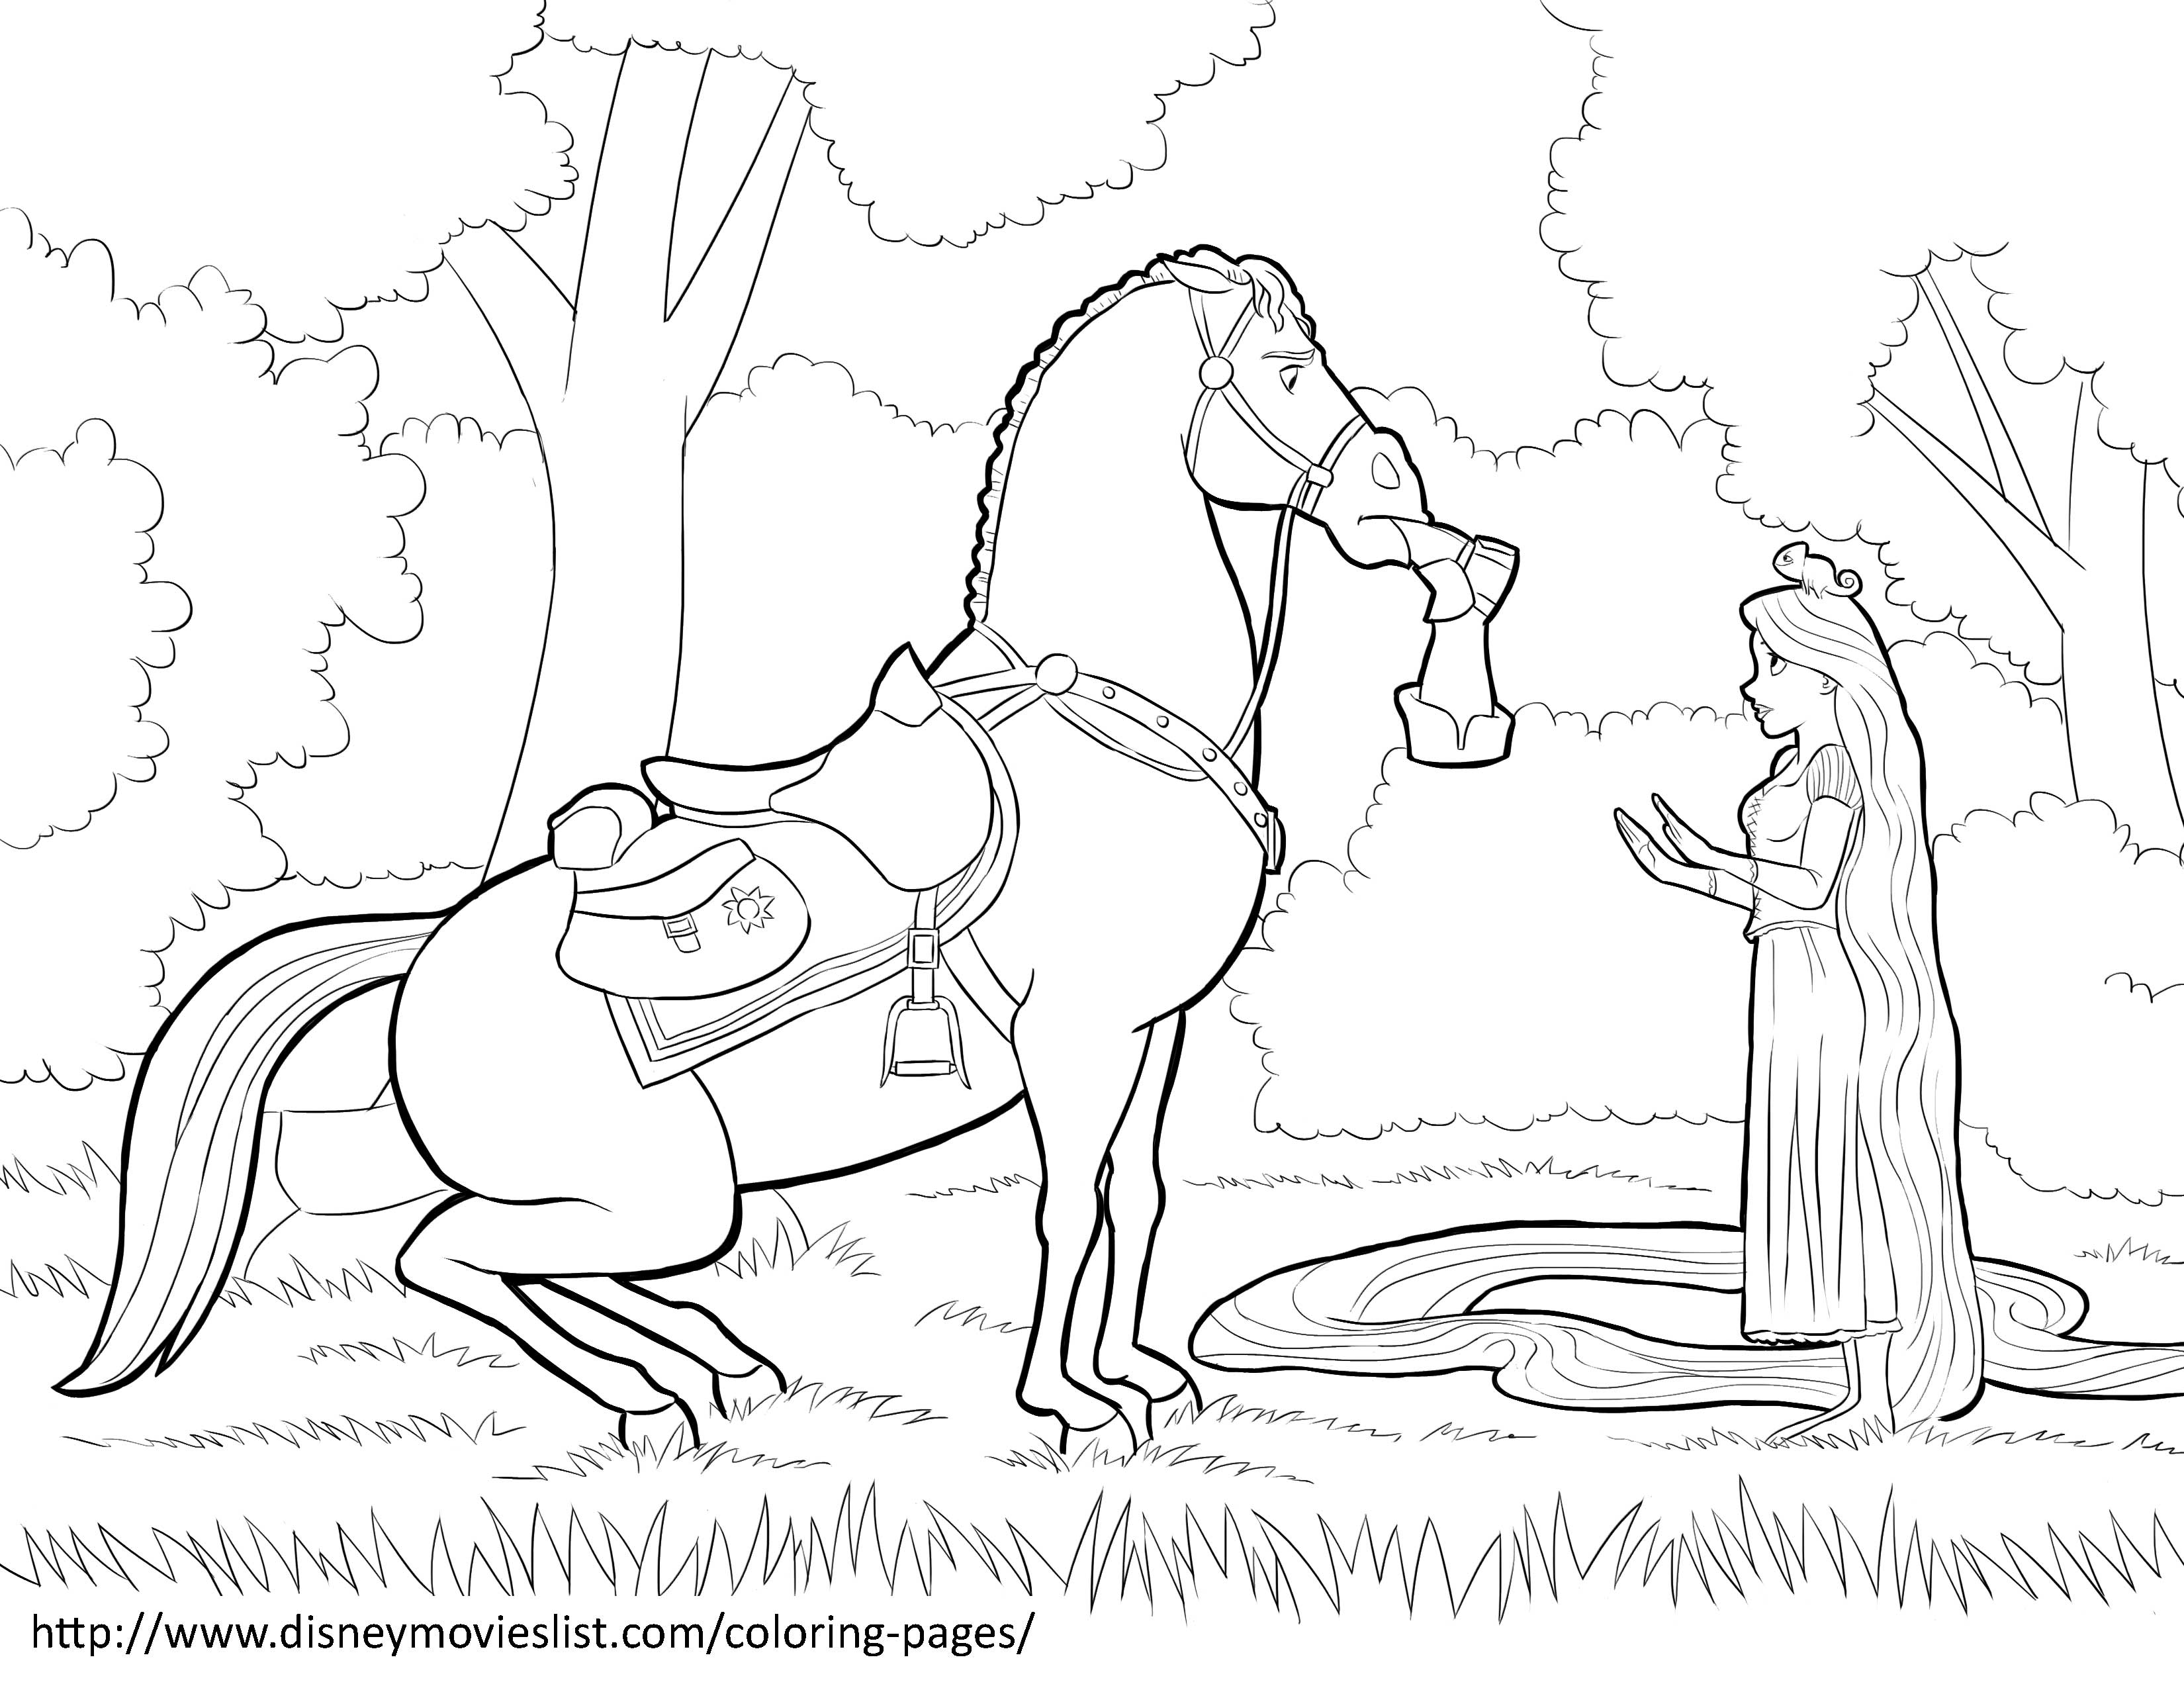 3300x2550 Tangled Maximus Coloring Pages On If You Want To Print The Disney